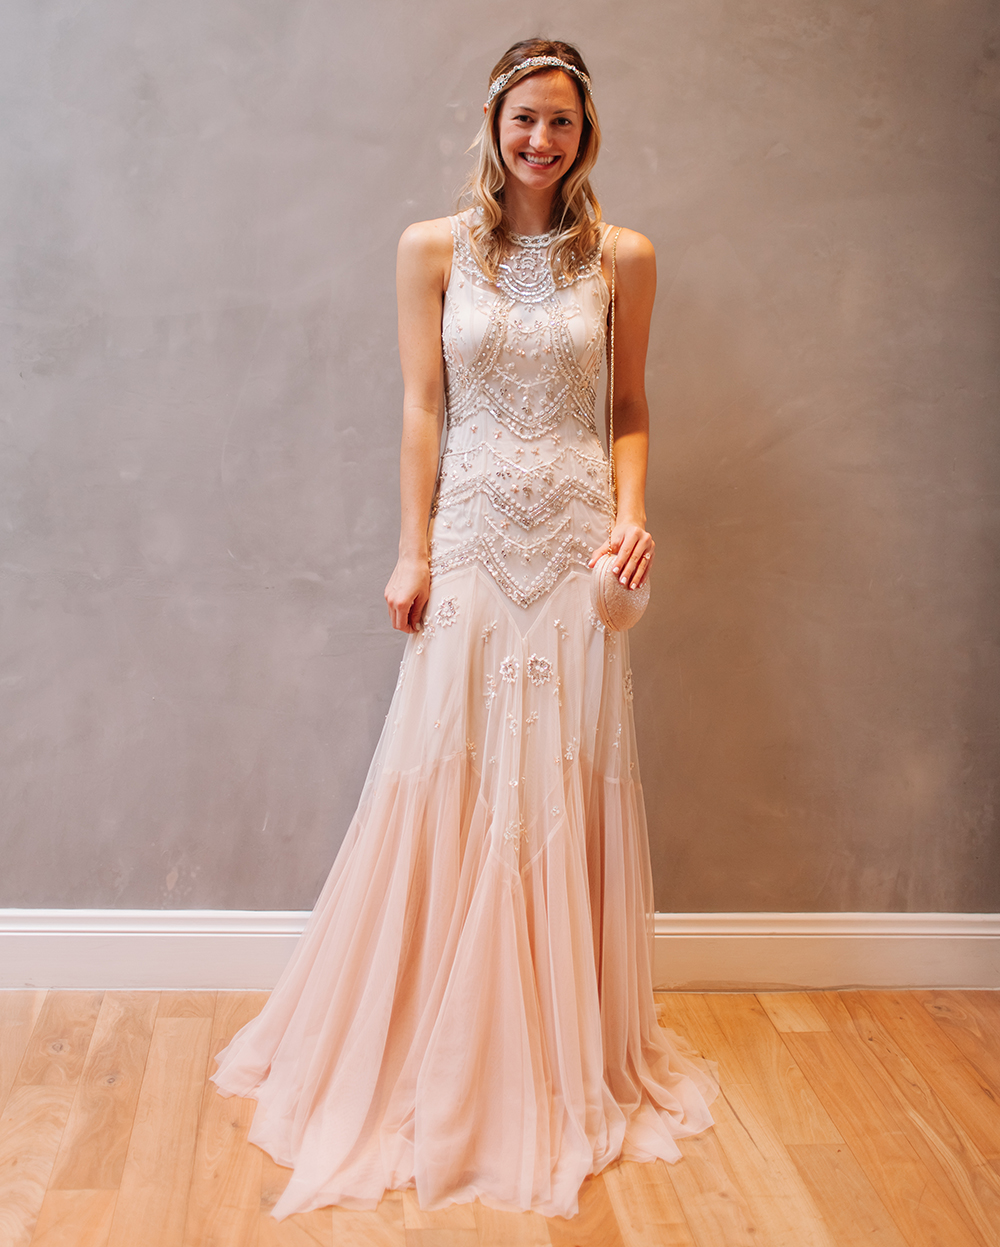 Anthropologie wedding dresses websitewedding dressesdressesss anthropologie wedding dresses website junglespirit